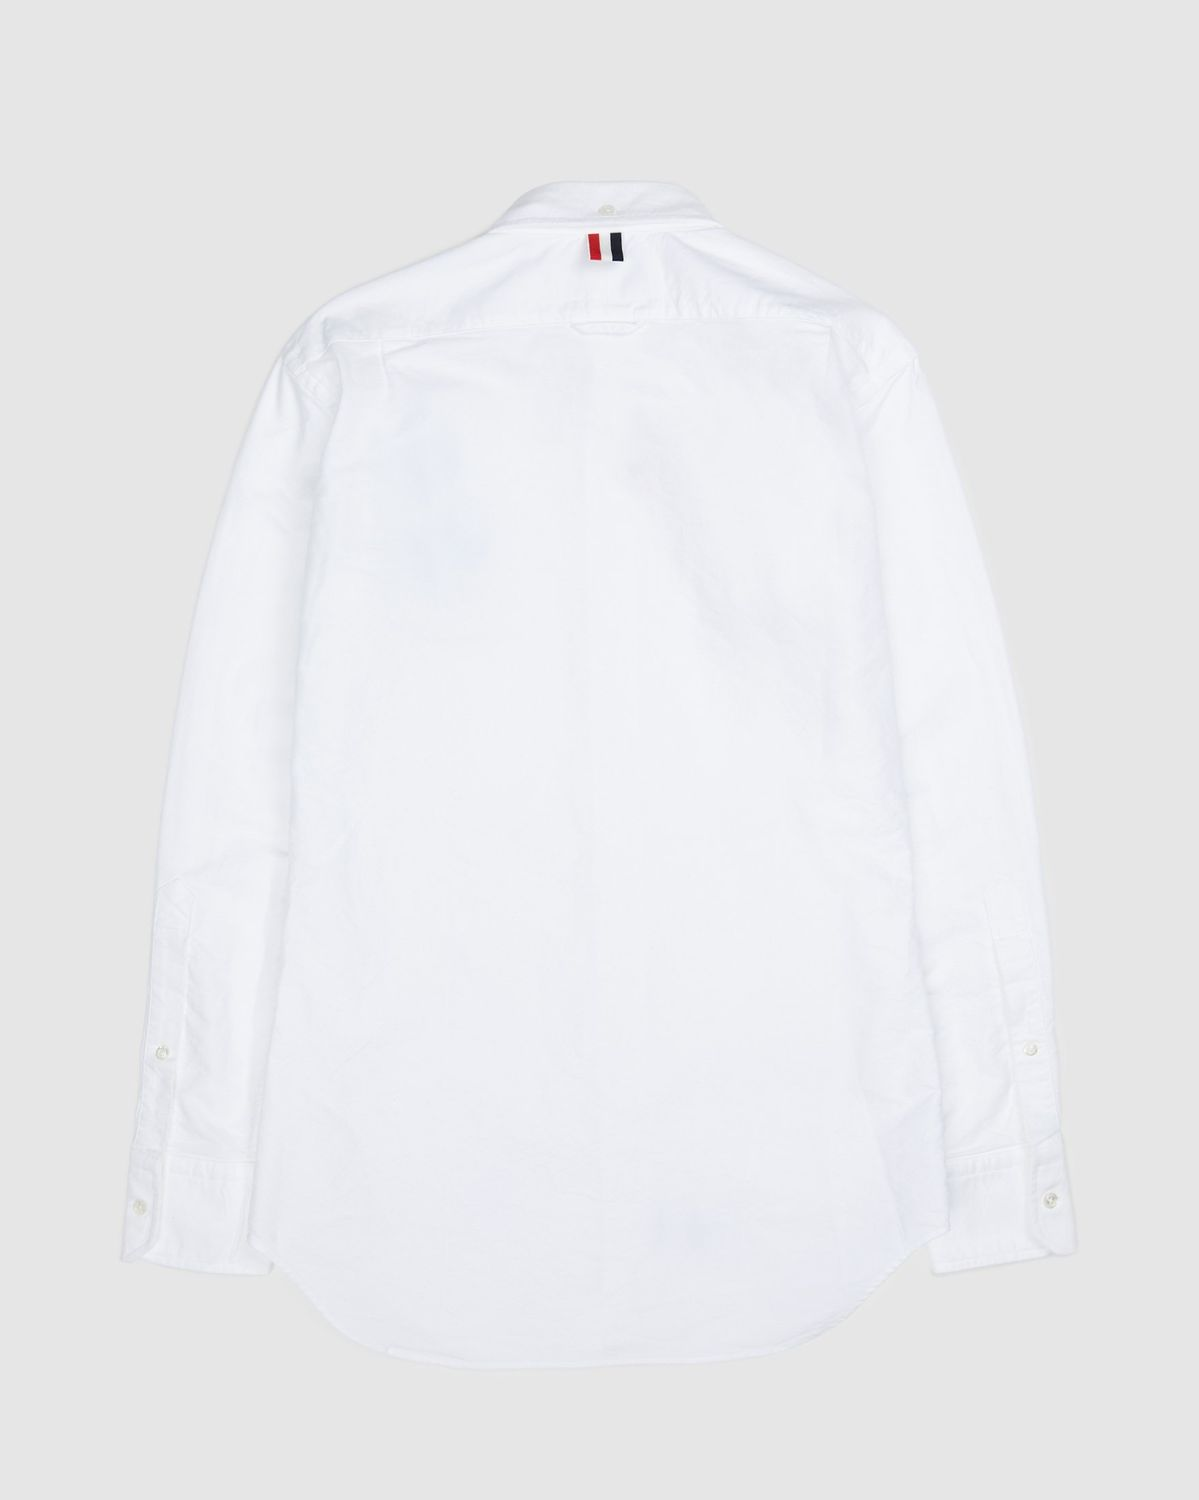 Colette Mon Amour x Thom Browne - White Heart Classic Shirt - Image 2